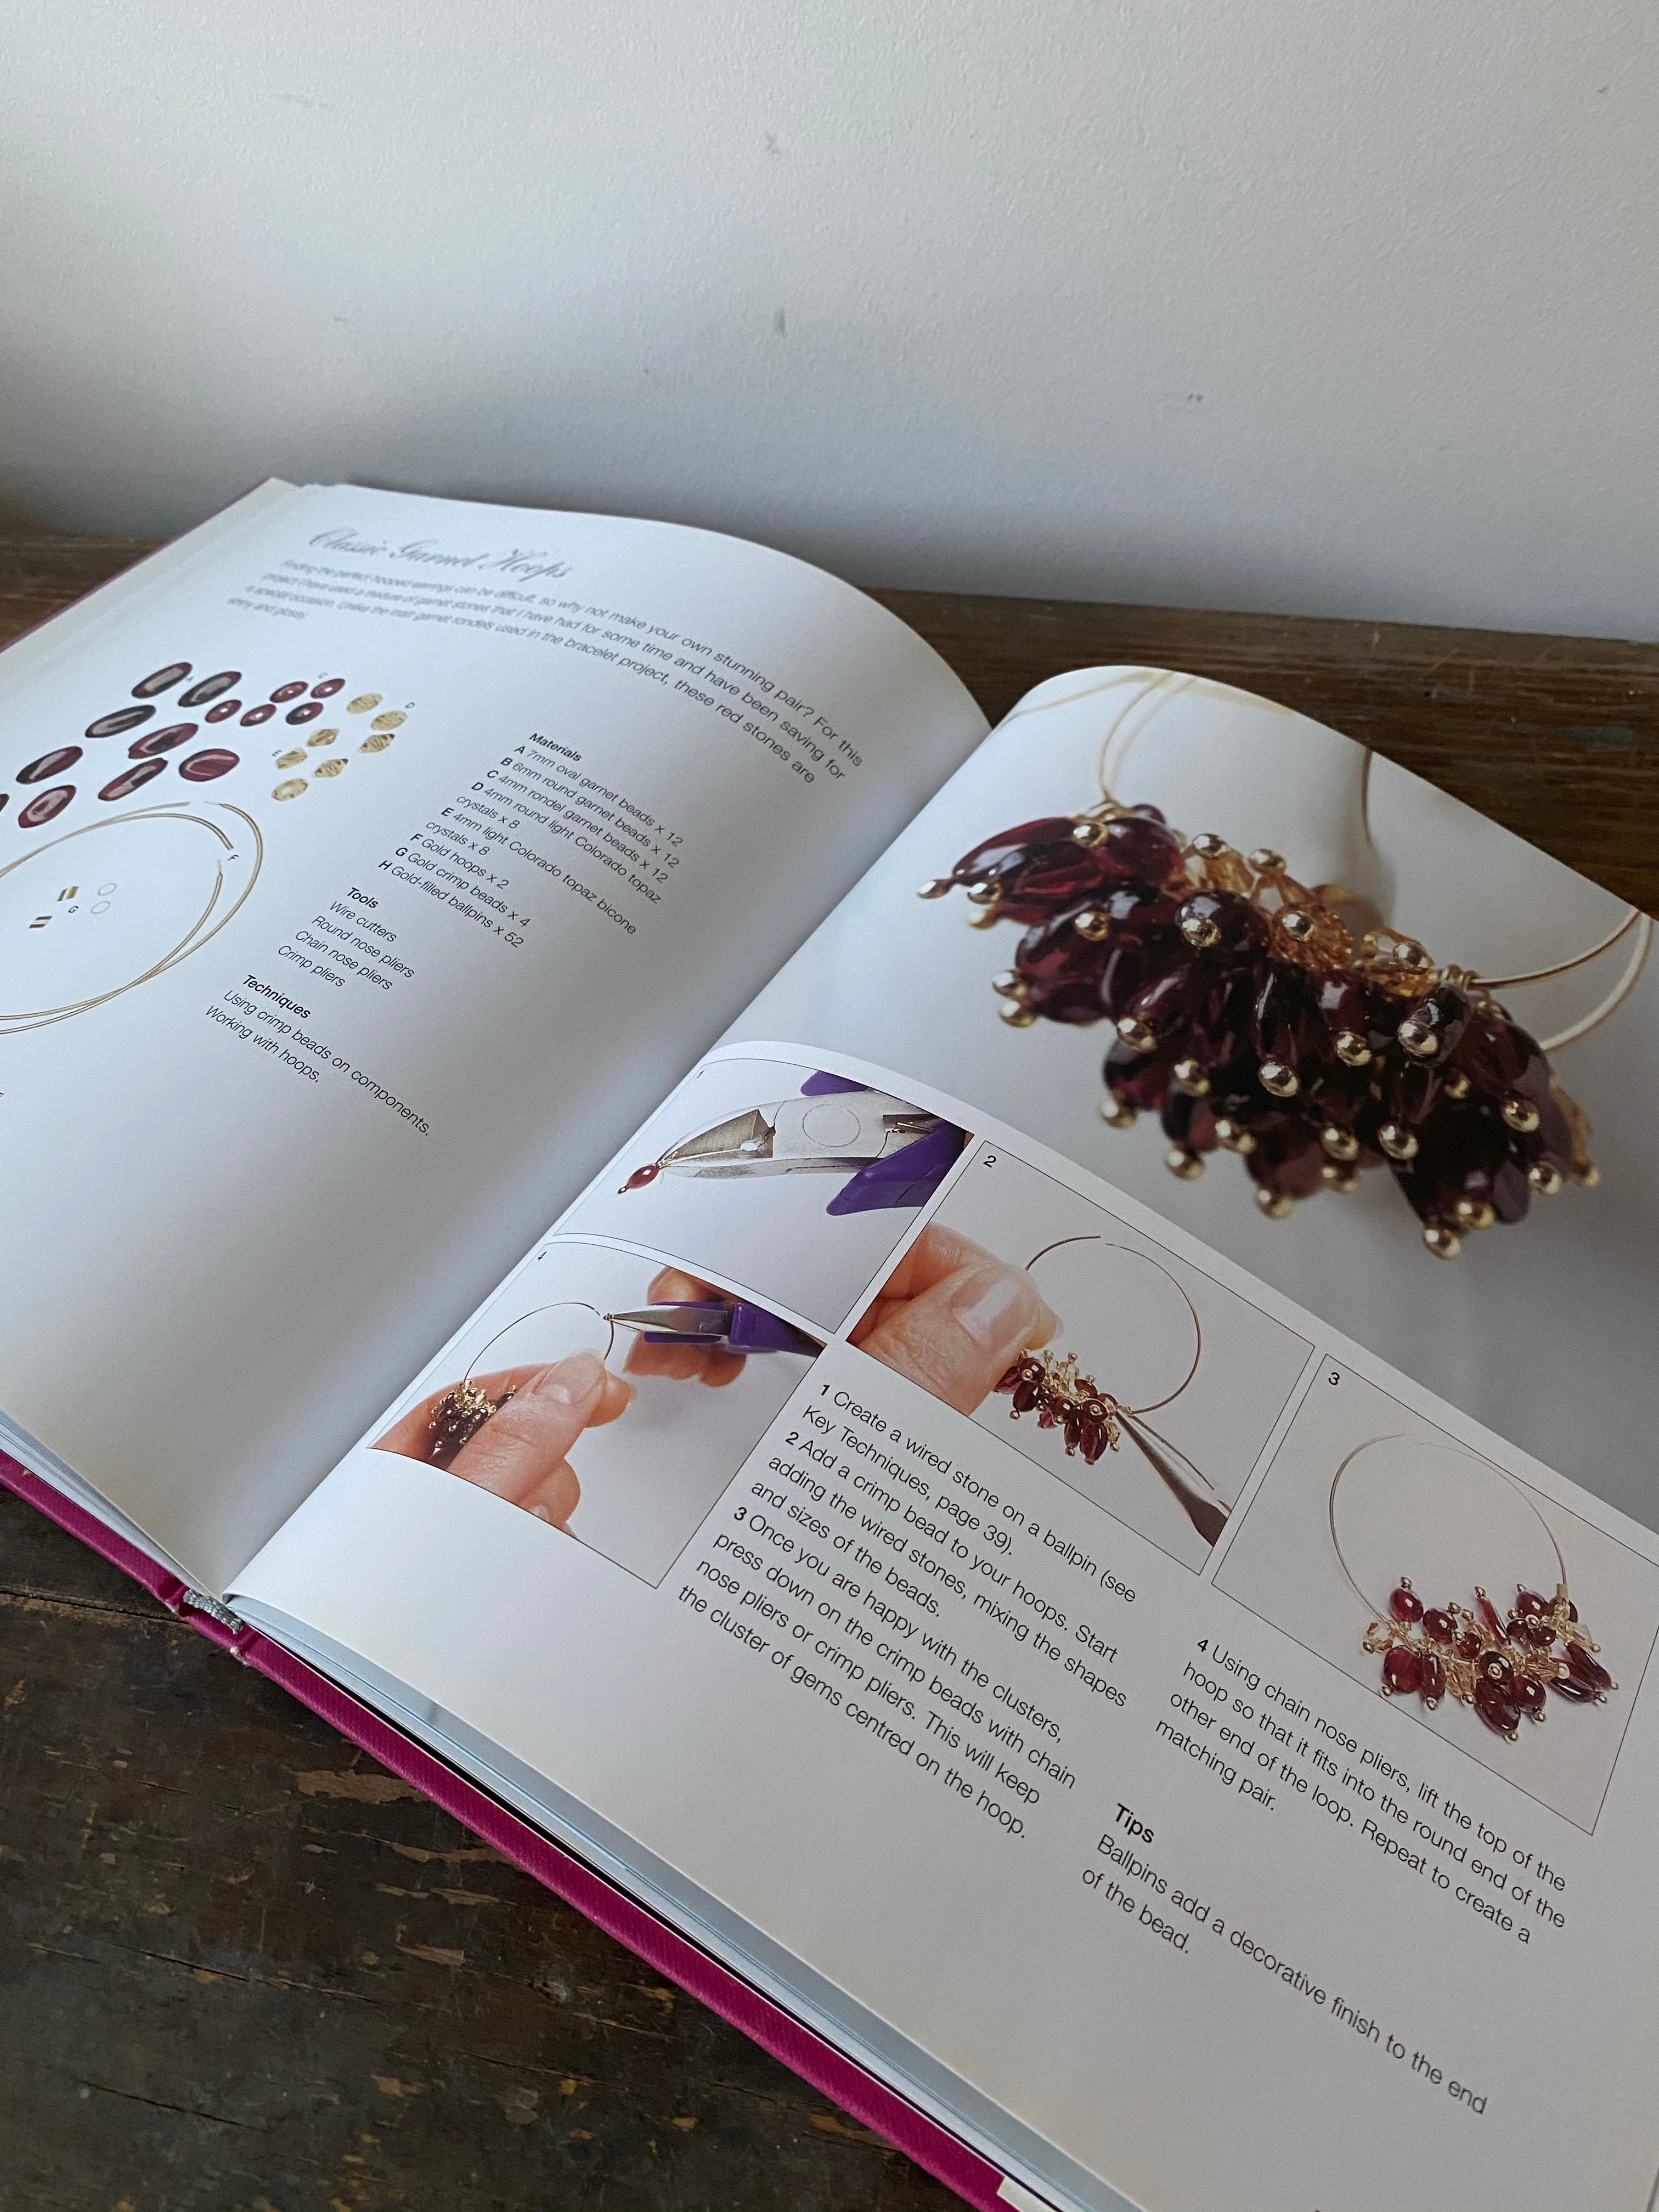 Bejewelled Book by Claire Aristides